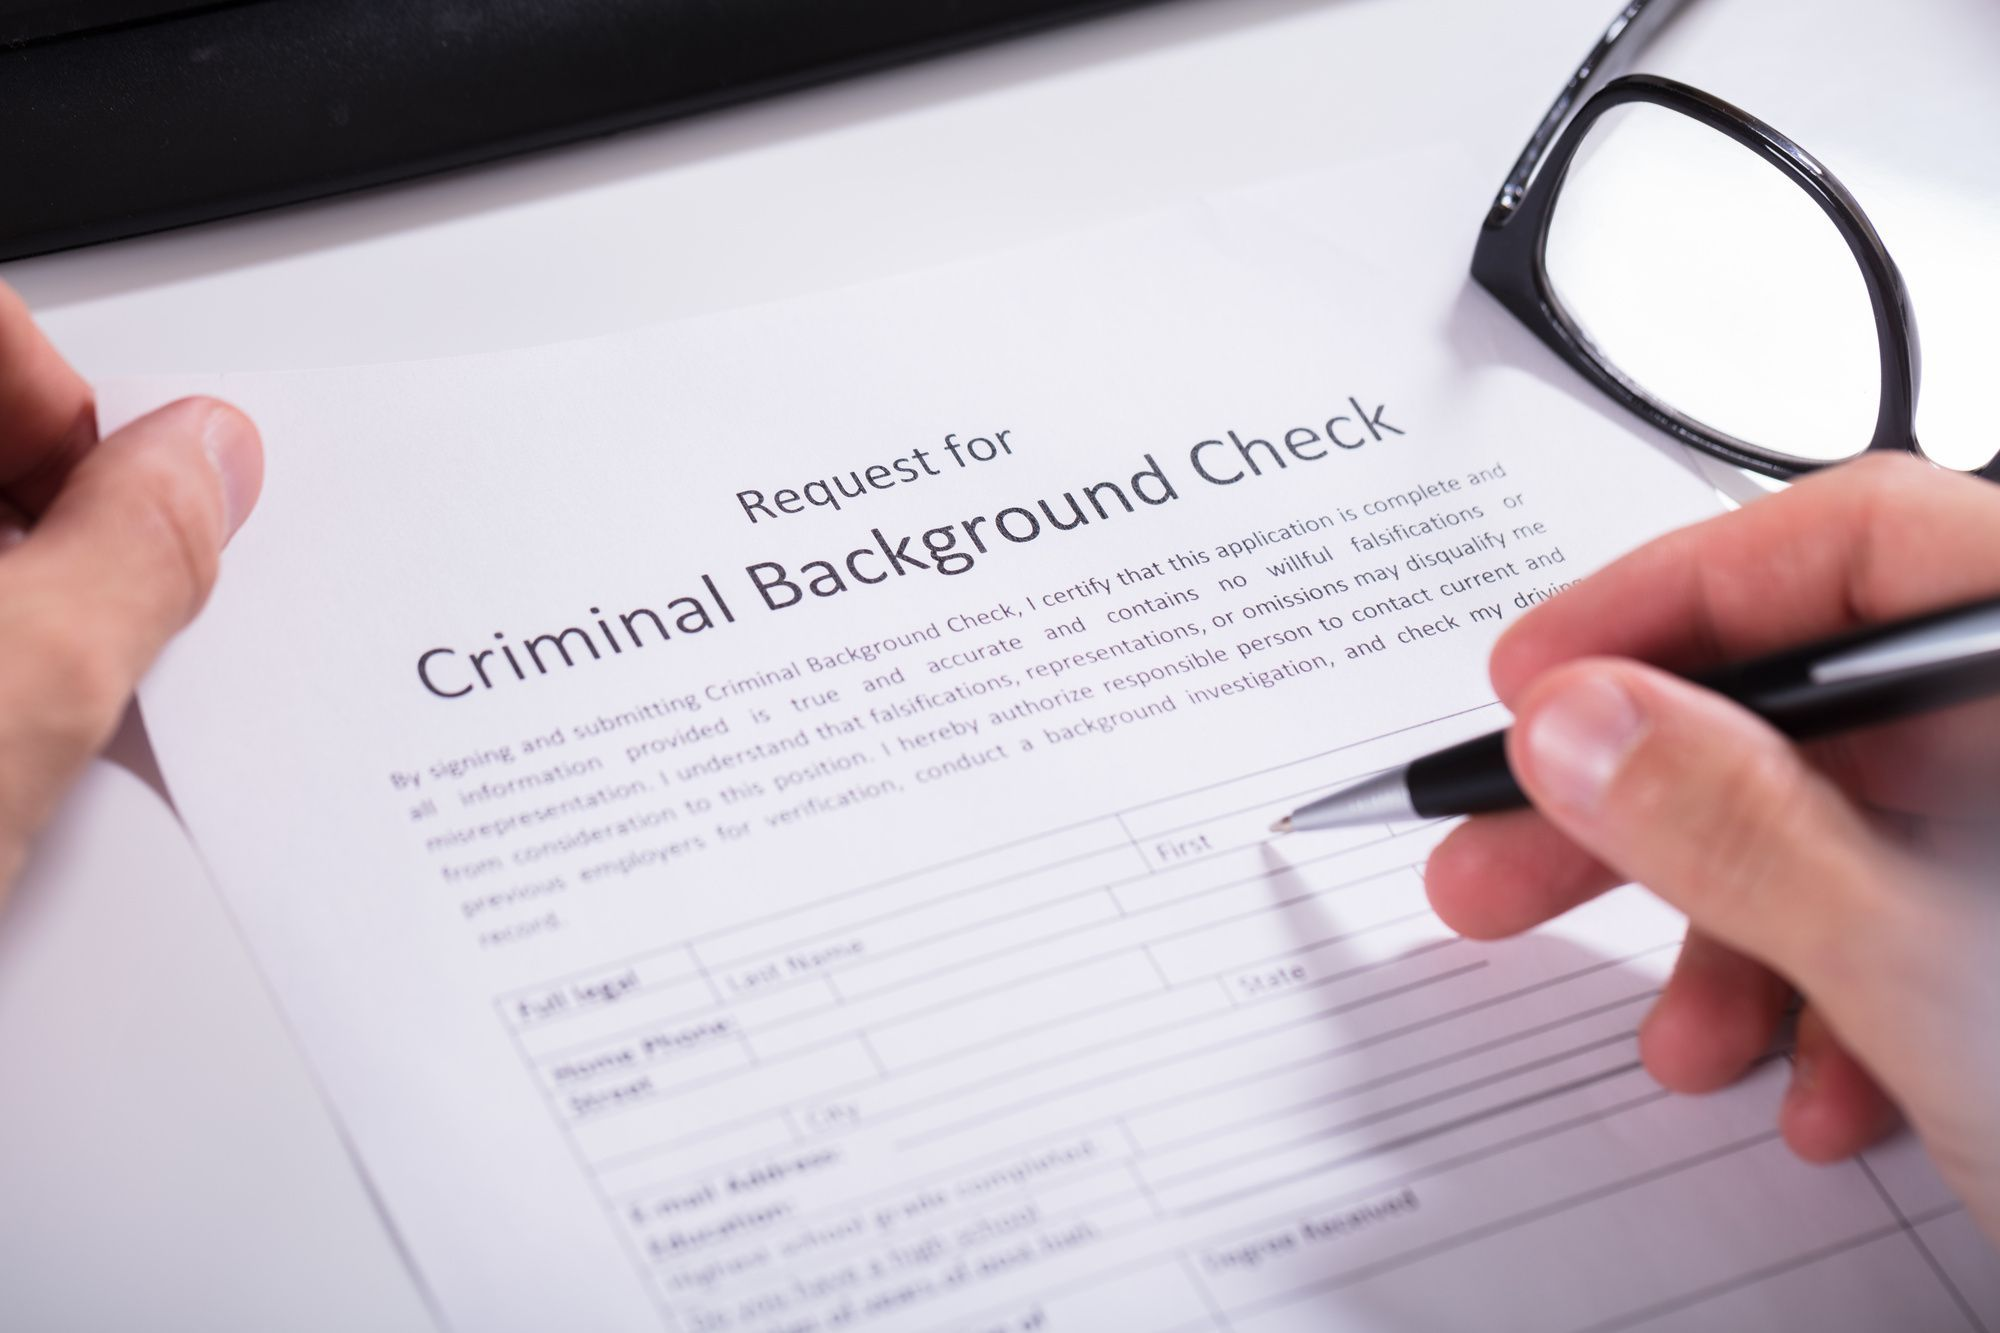 Dating services that conduct background check